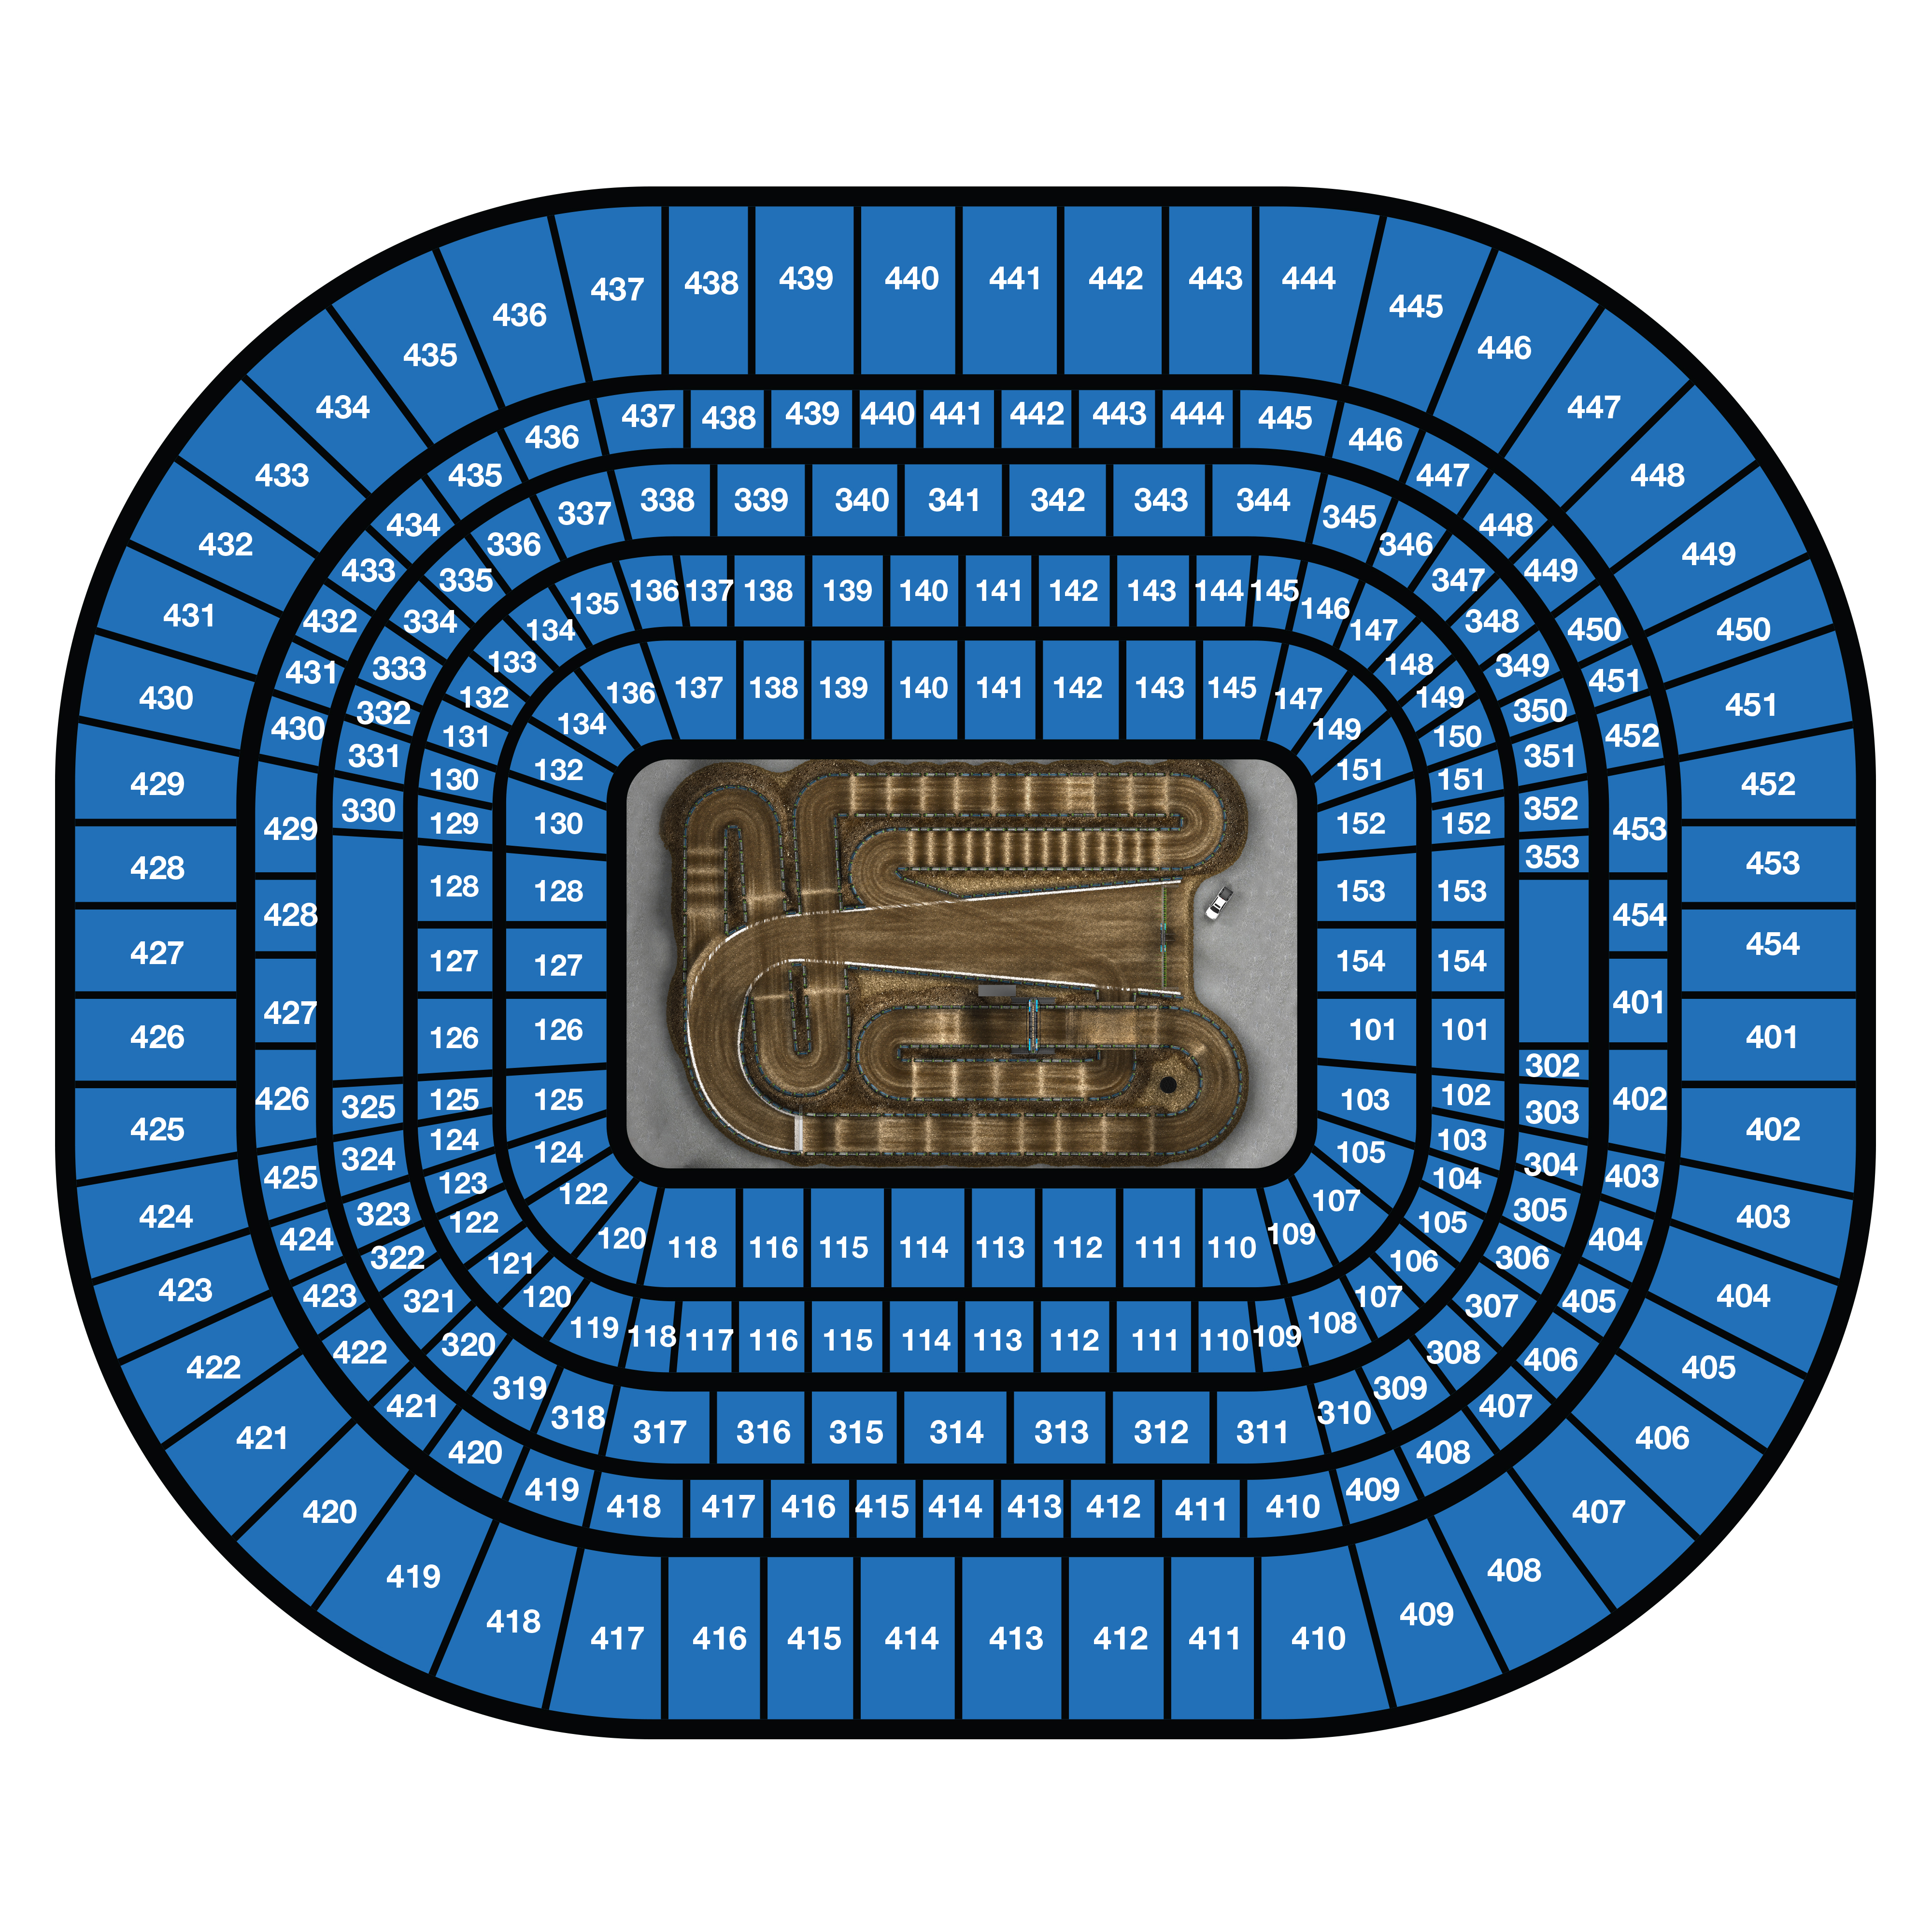 St. Louis Seating Chart